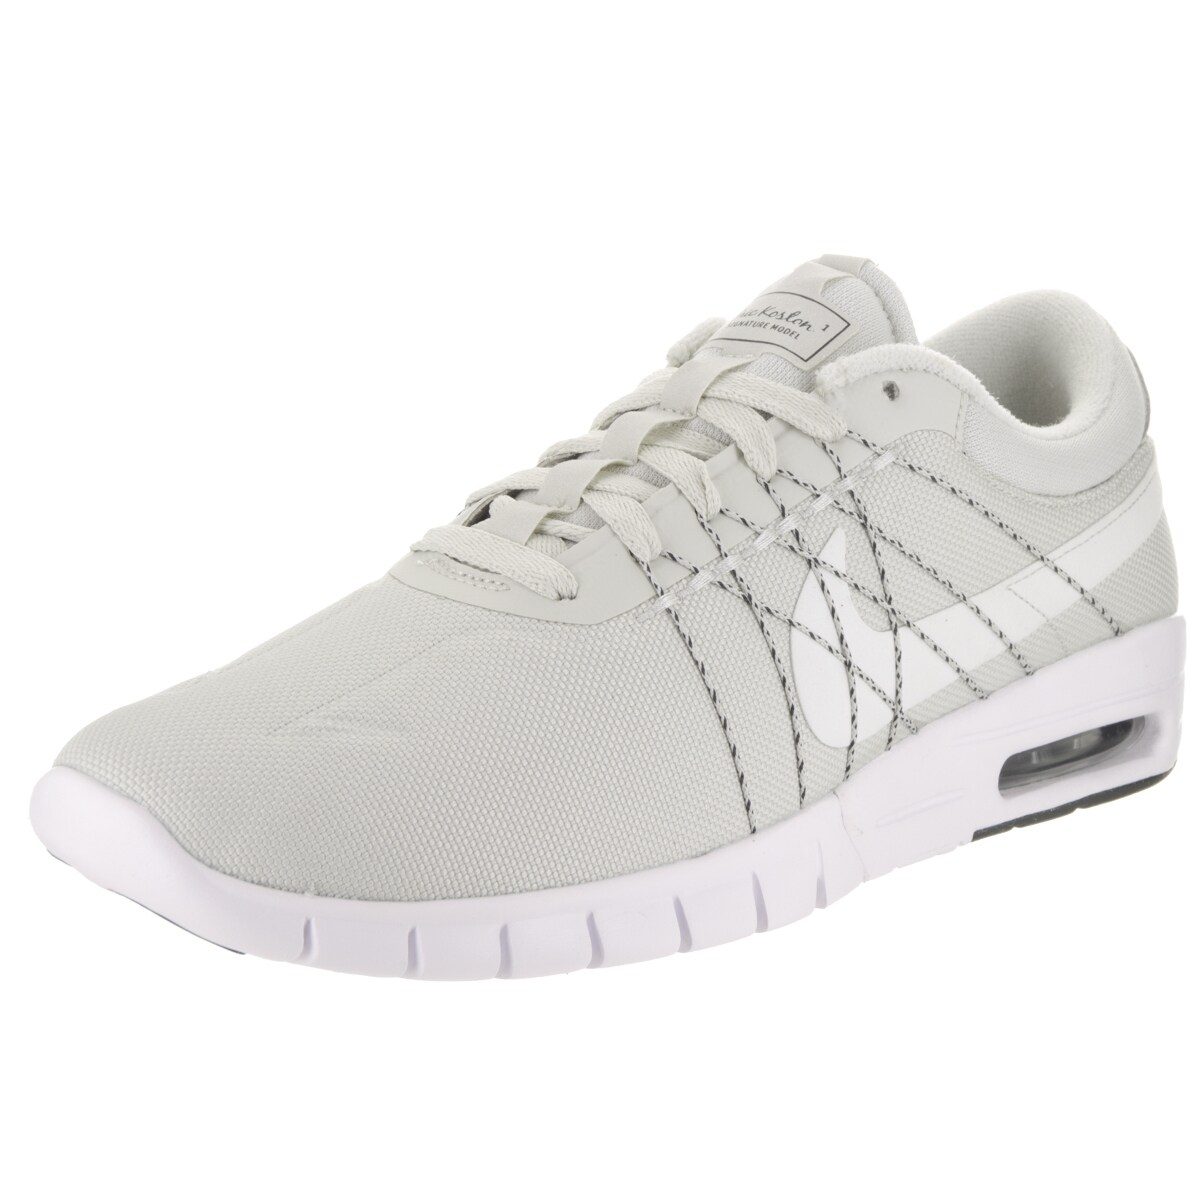 c0d1e7fdb56f Shop nike mens koston max white textile skate shoe free jpg 1200x1200 Koston  shoes